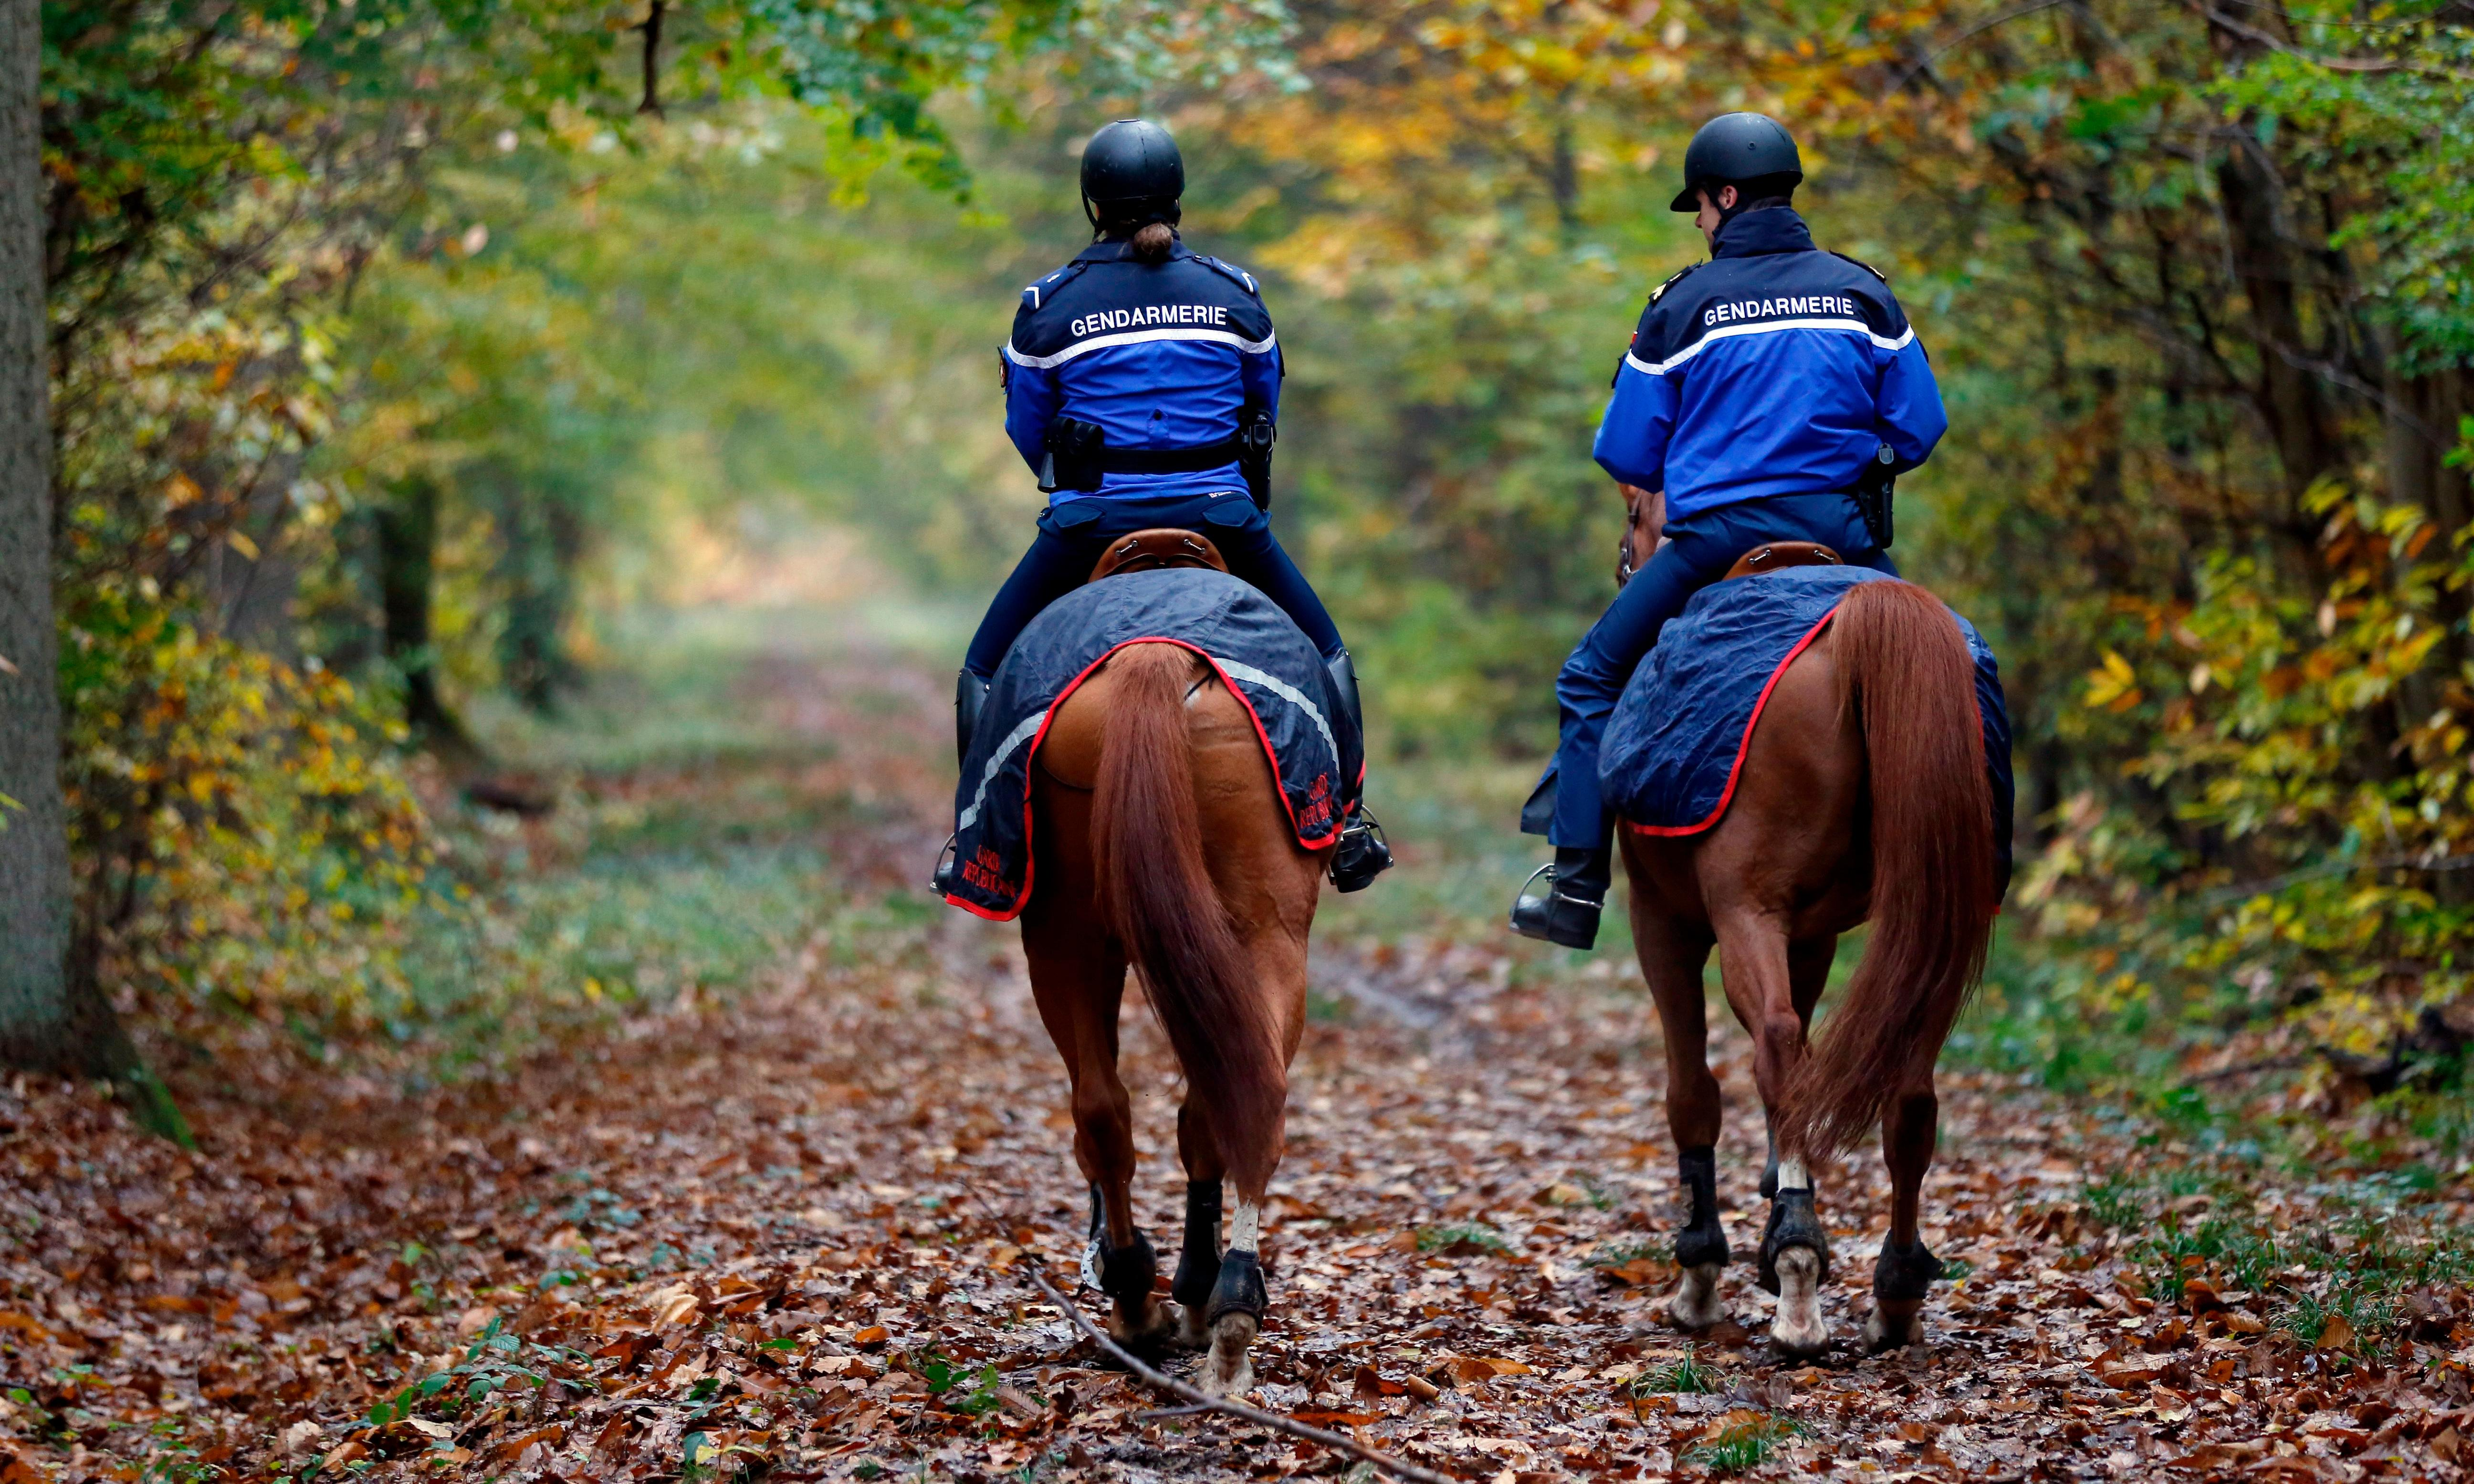 France: pregnant woman killed by dogs during hunt with hounds